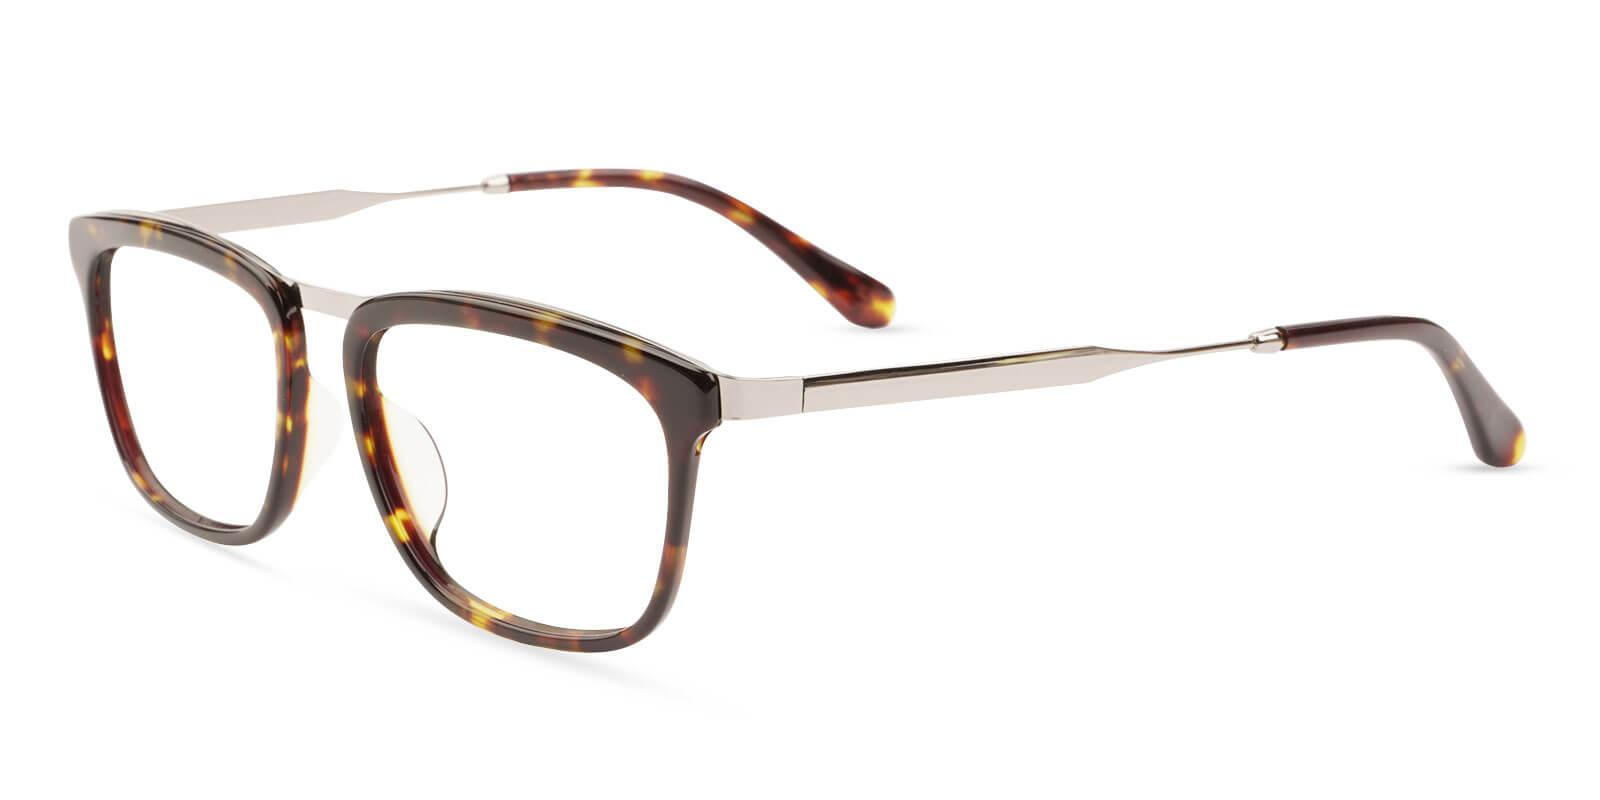 Audrey Tortoise Acetate , Metal Eyeglasses , UniversalBridgeFit Frames from ABBE Glasses